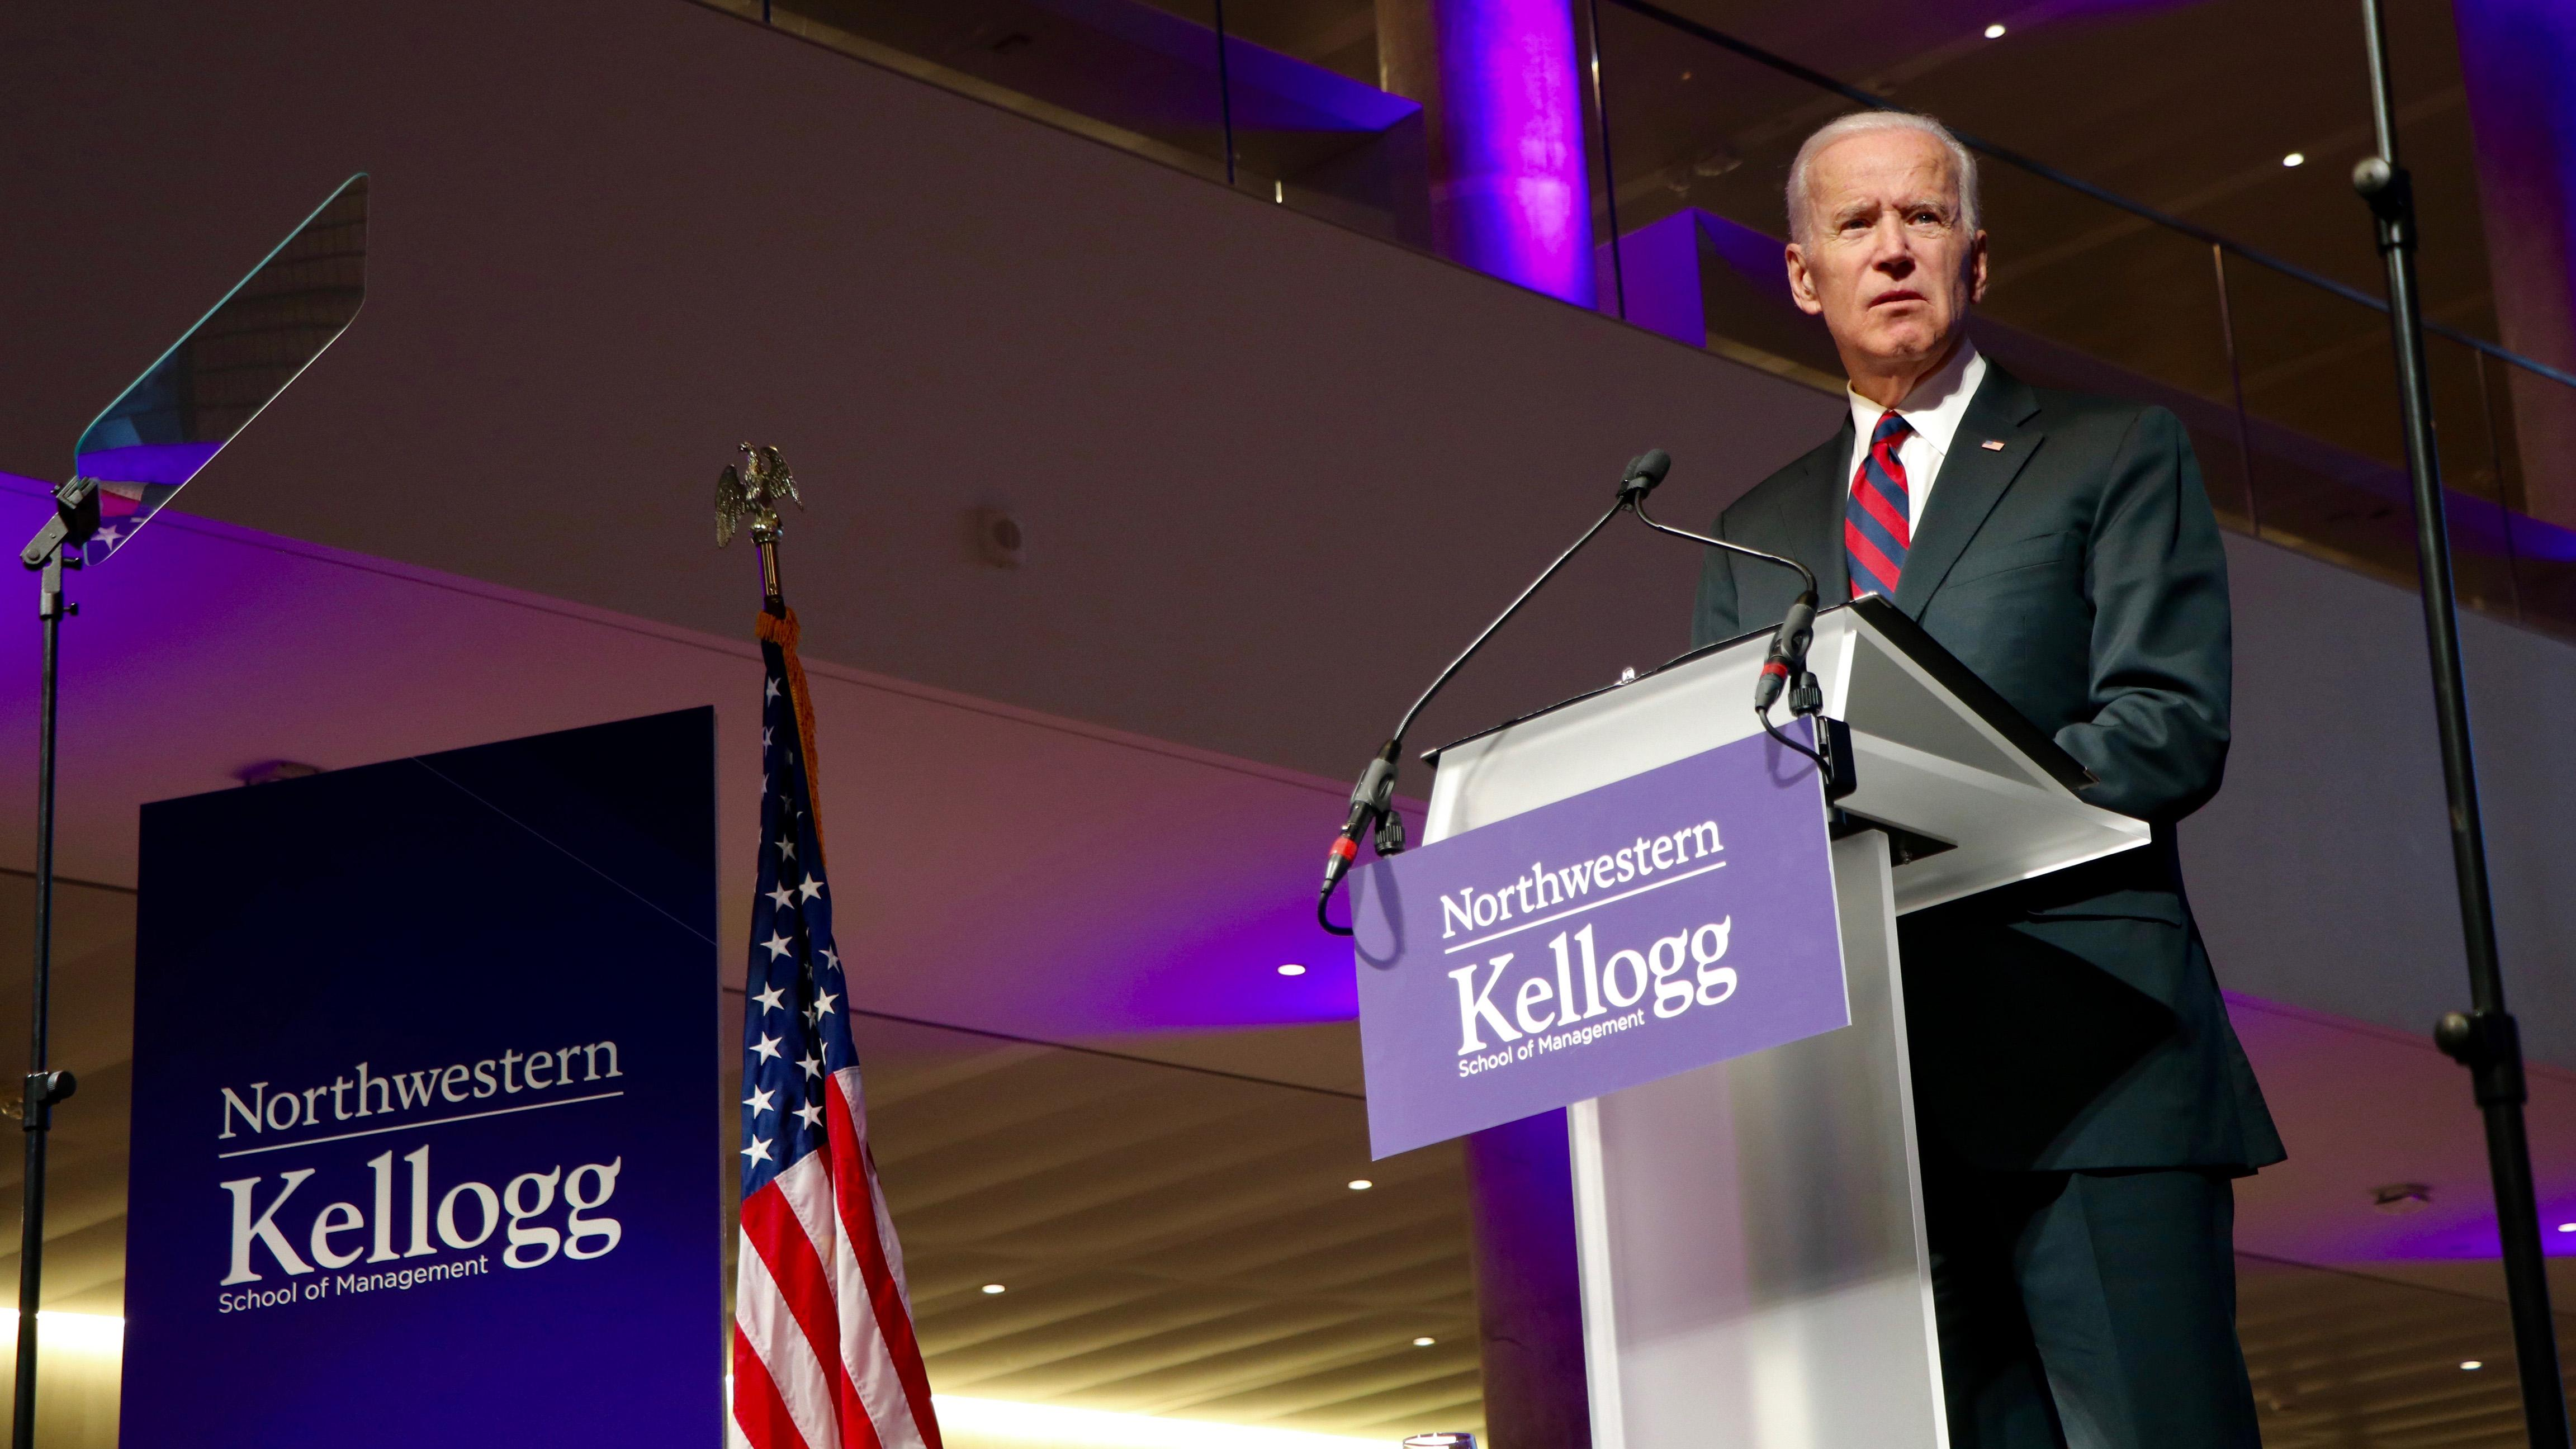 Biden touched on a range of issues Friday, including immigration, gender equality and education. (Evan Garcia / Chicago Tonight)